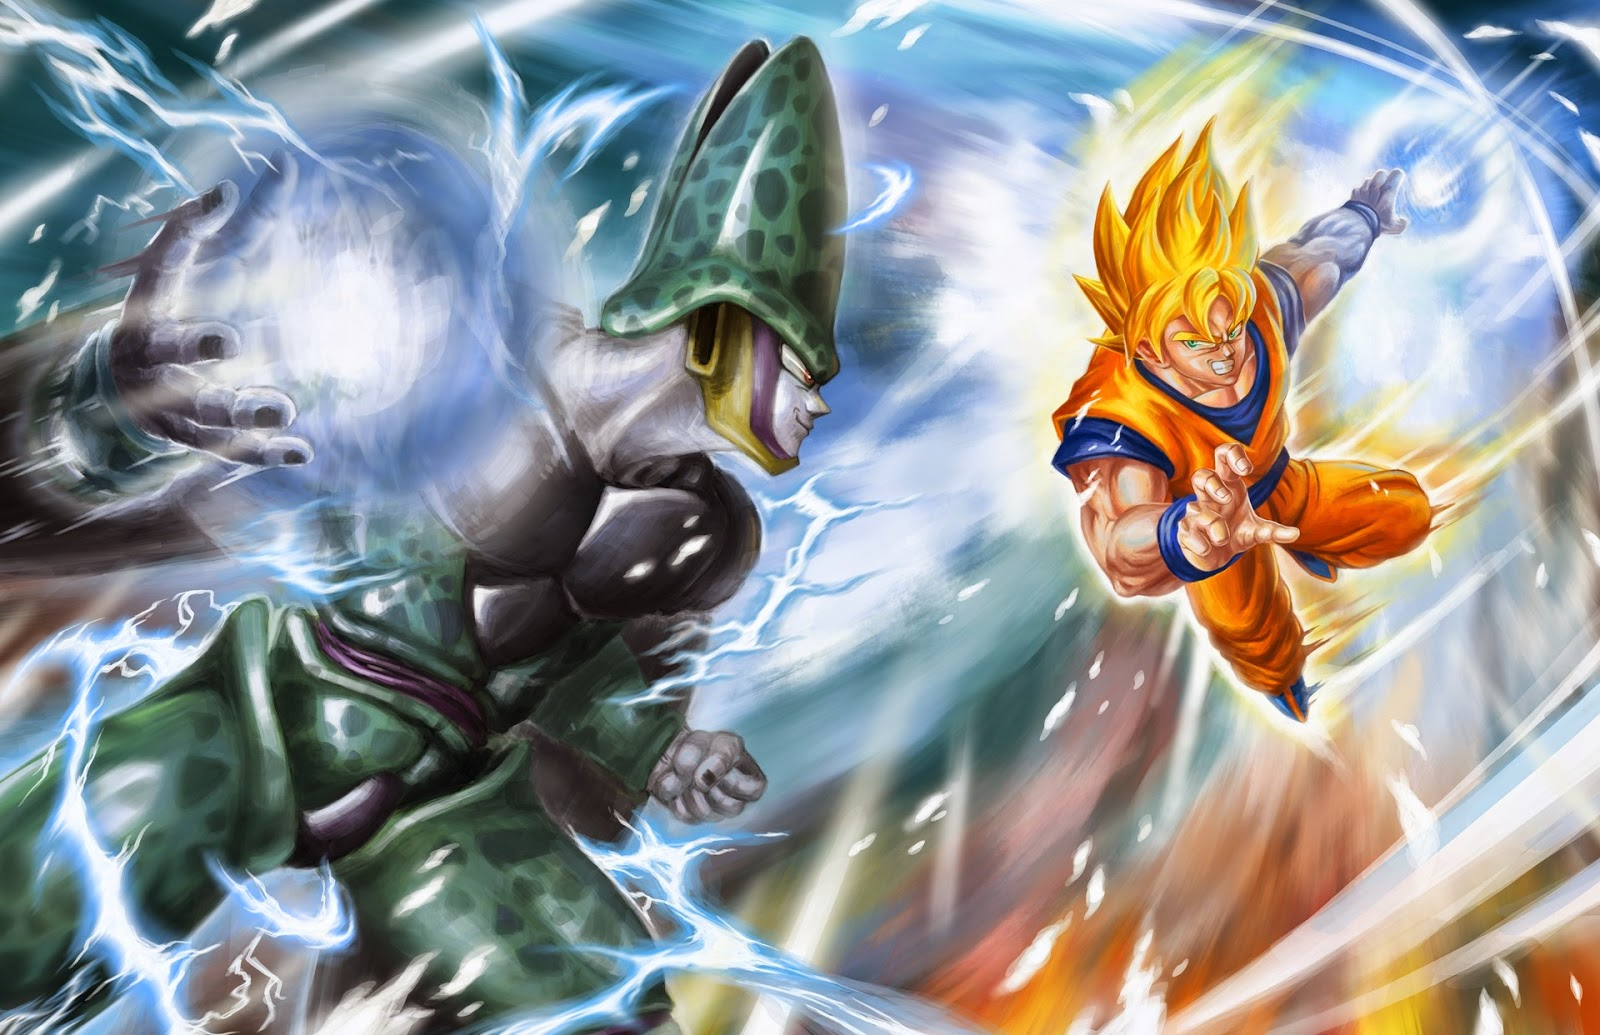 Fondos De Pantalla De Dragon Ball: Dragon Ball Z Wallpaper Hd